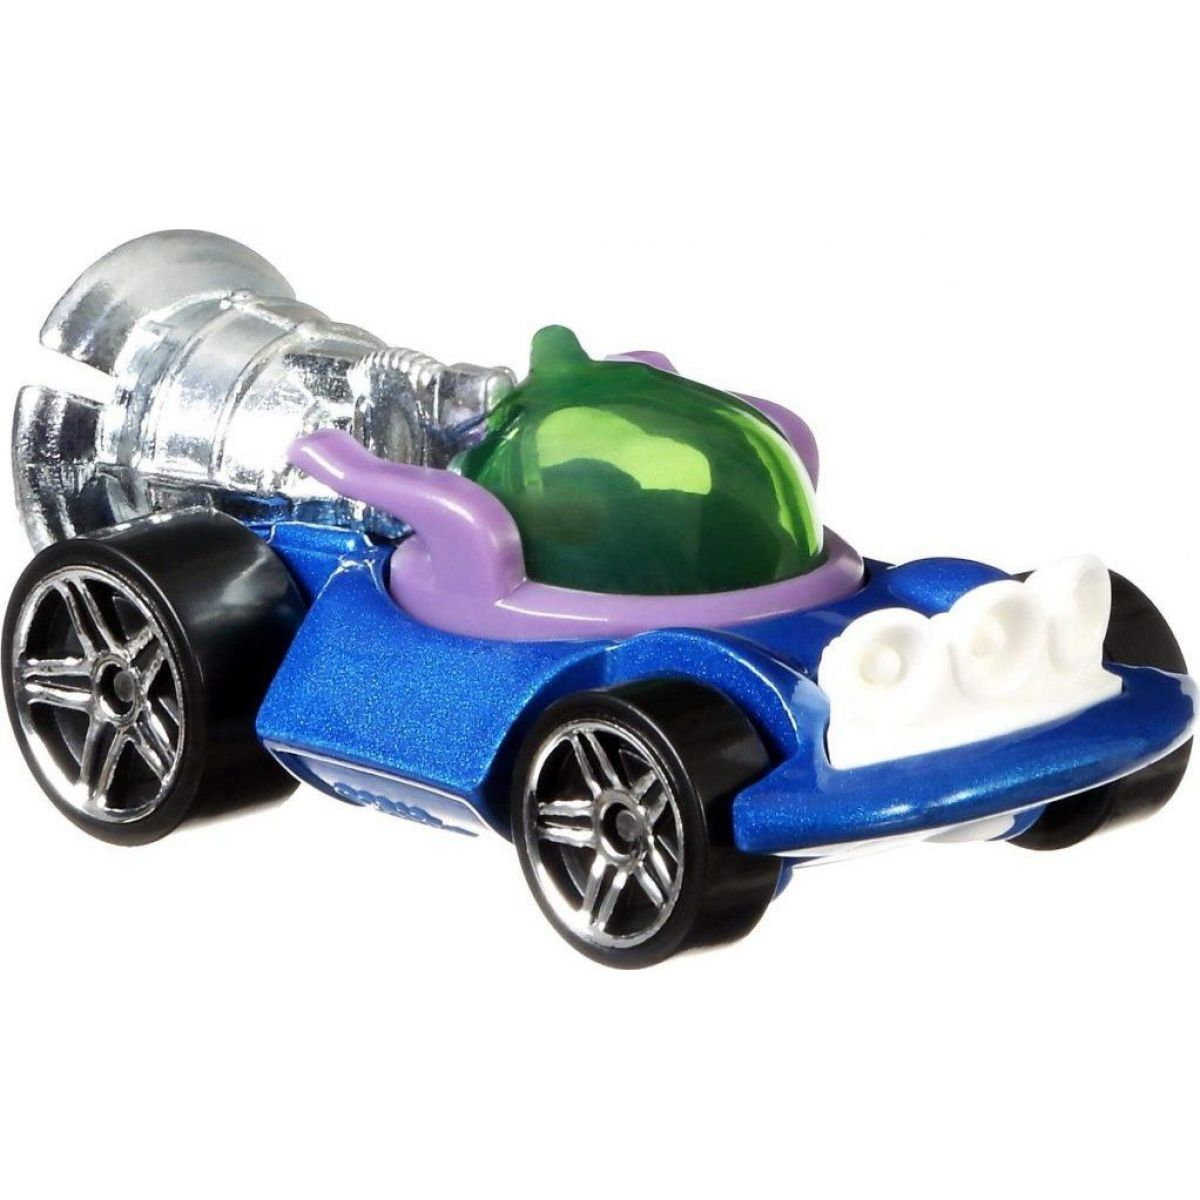 Hot Wheels tematické auto Toy story Alien